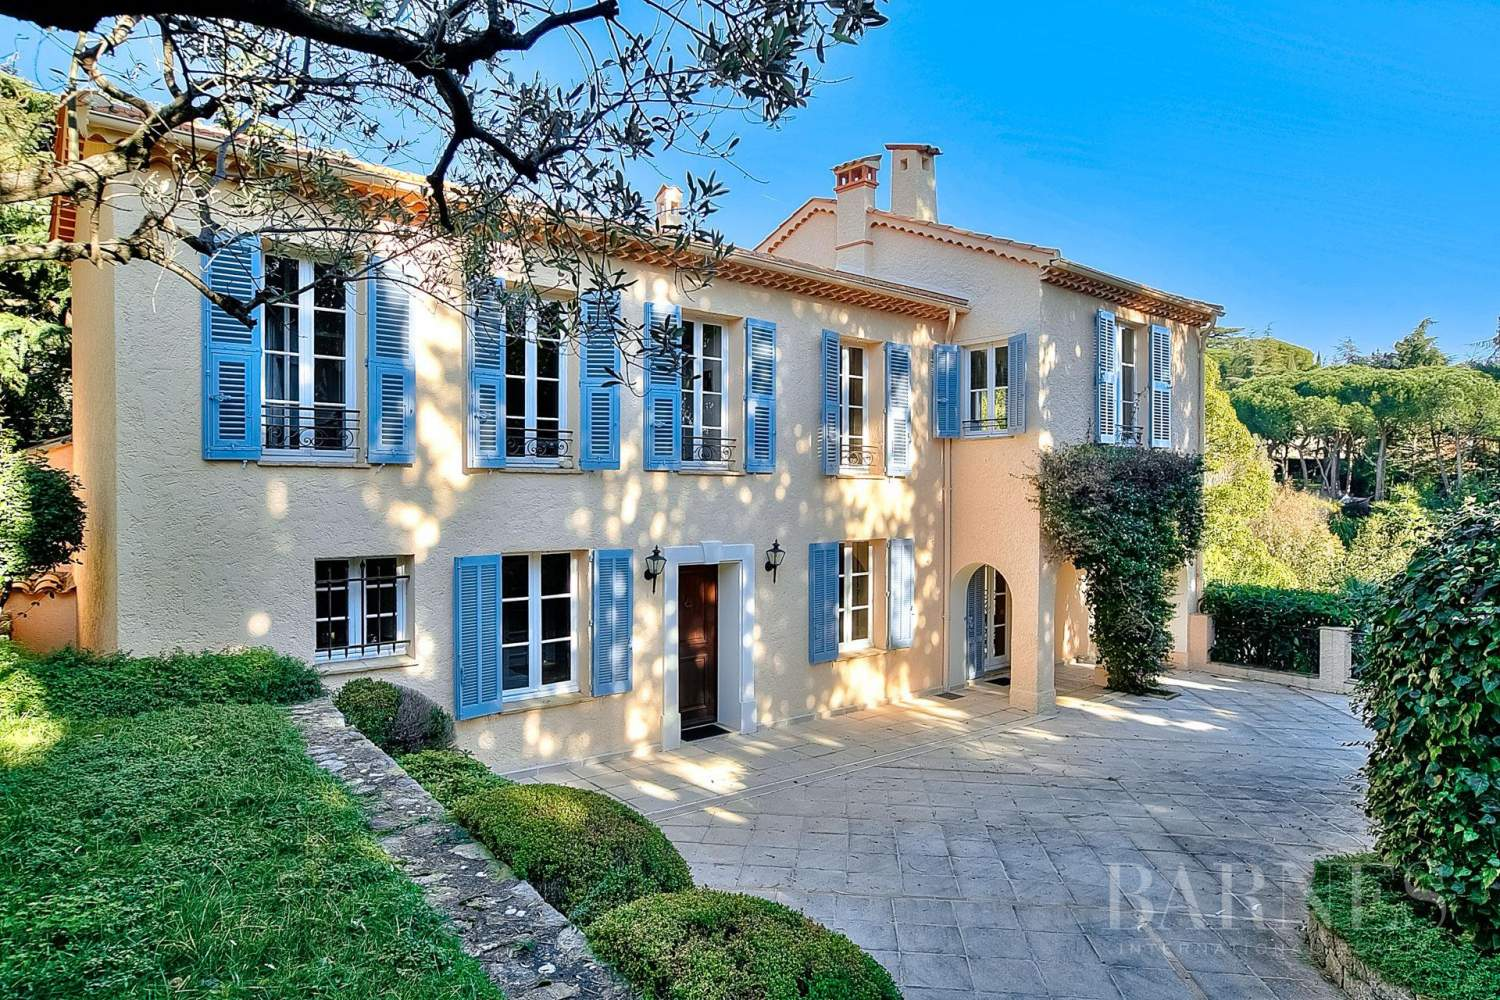 CANNES CROIX DES GARDES - PROPERTY COMPOSED OF 2 VILLAS - 5 BEDROOMS - SEA VIEW picture 6